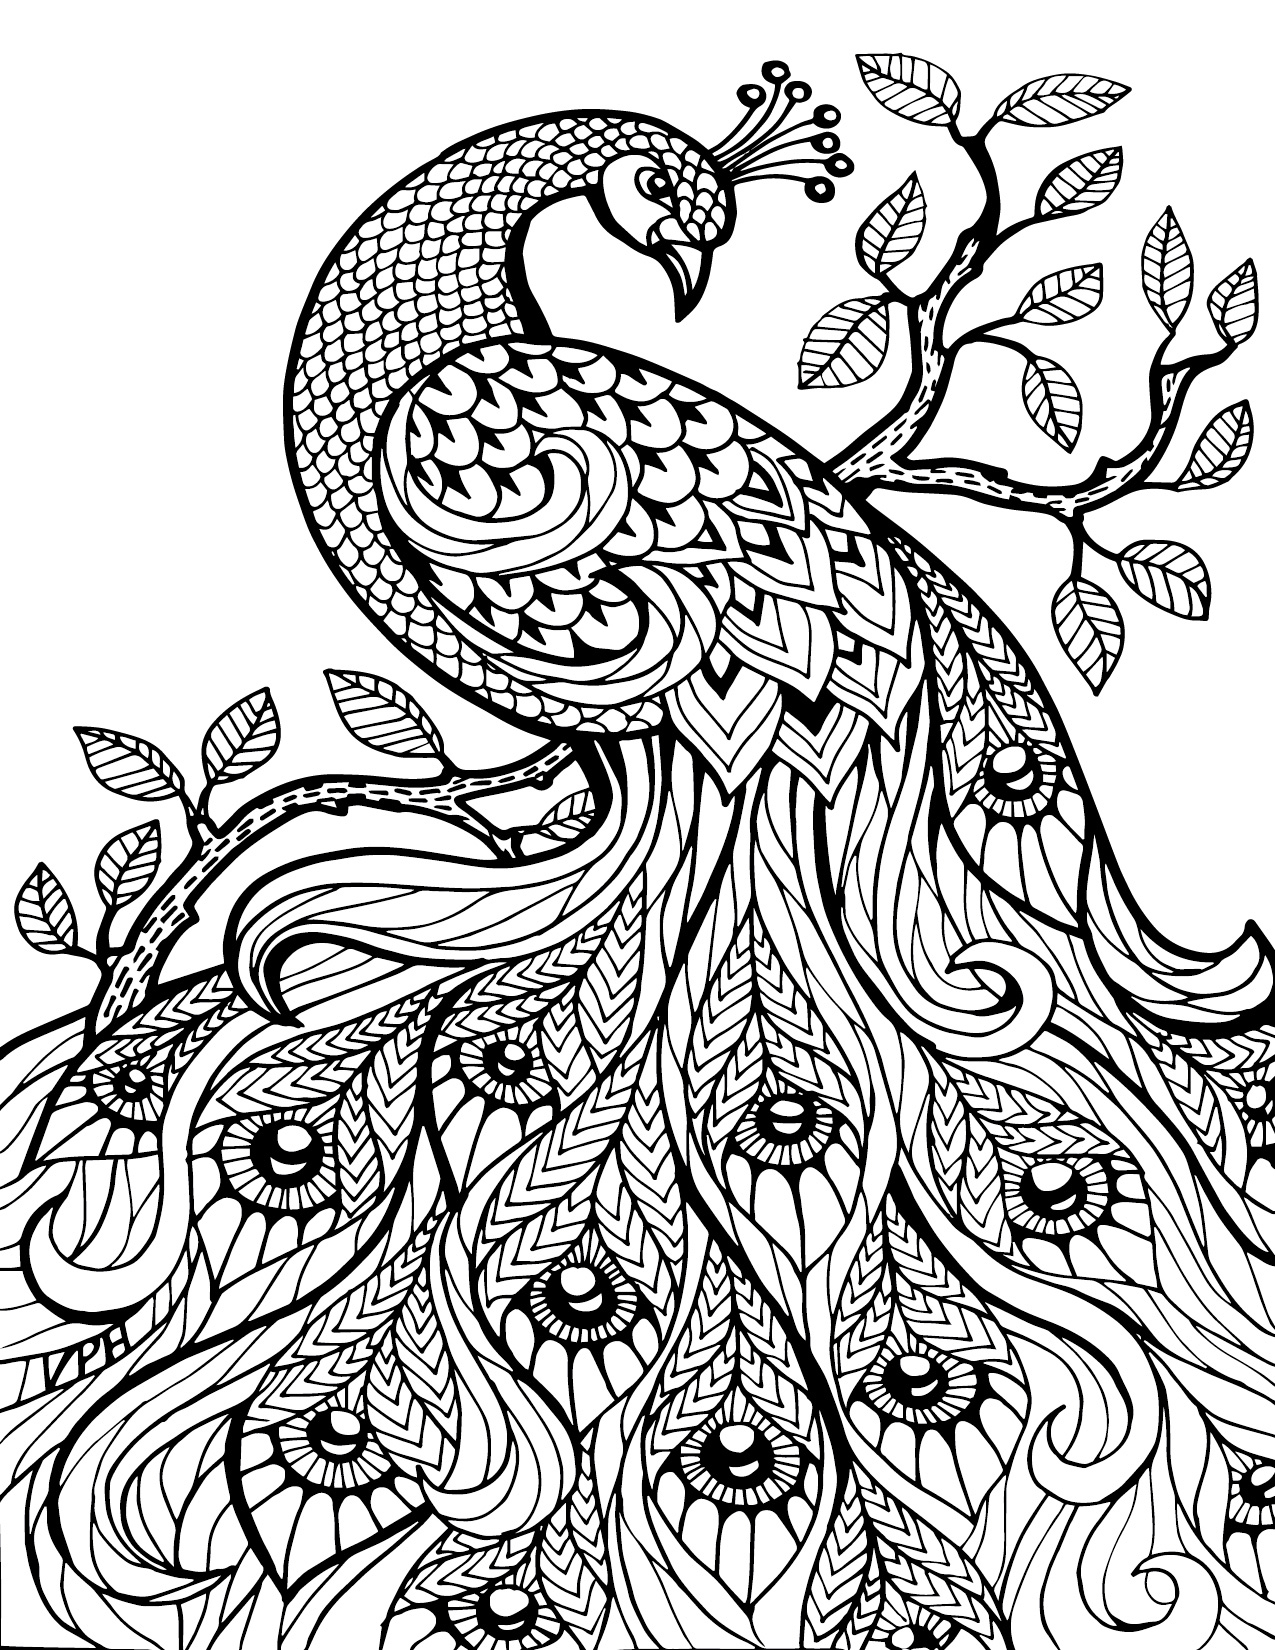 color pages online free download adult coloring pages online pages color